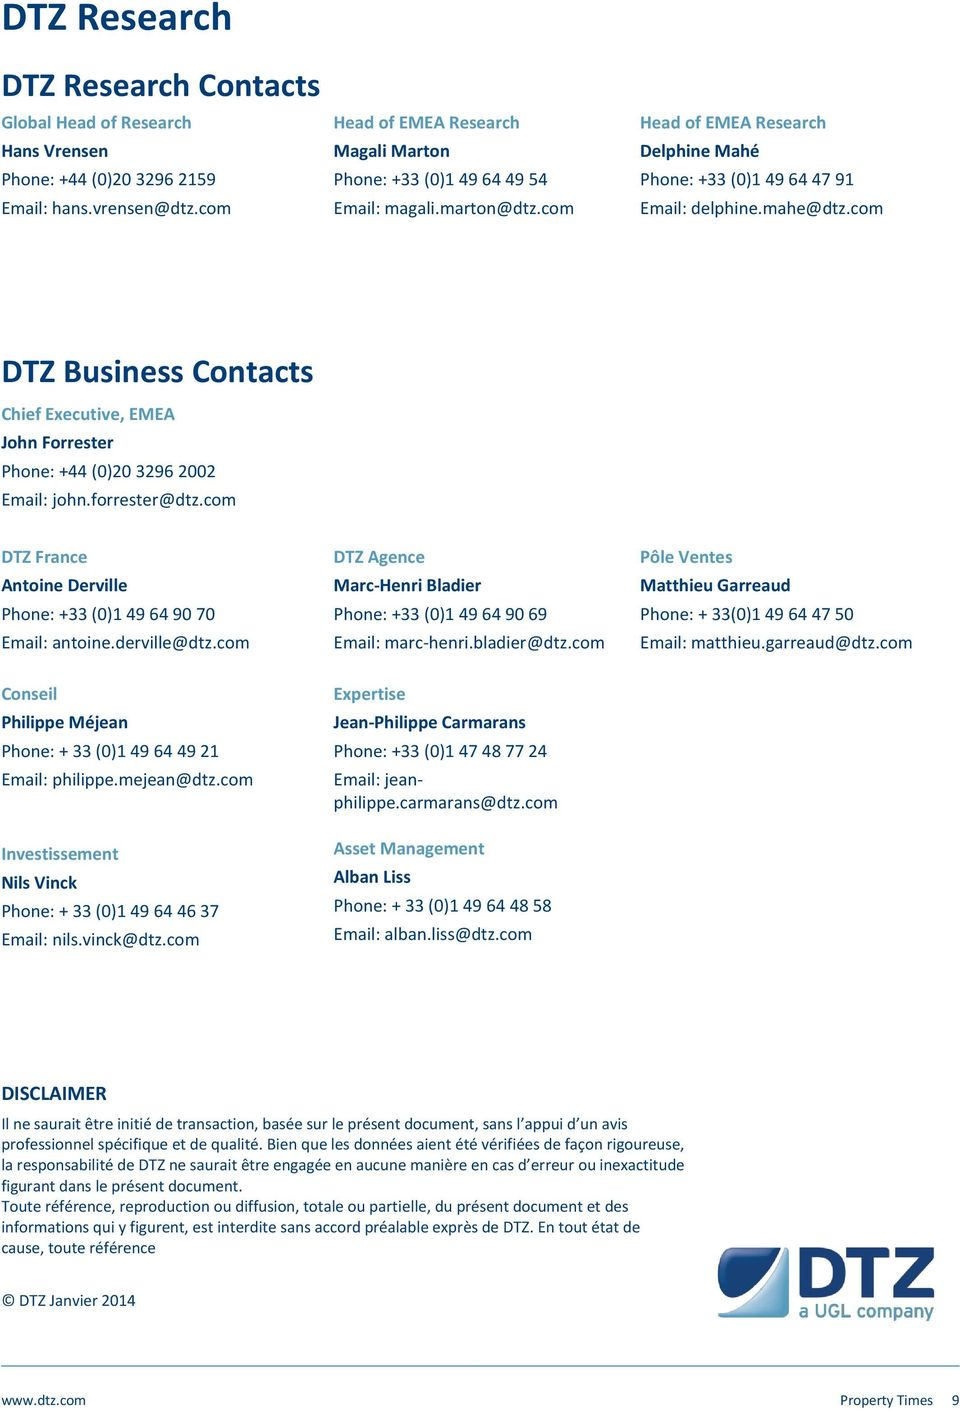 com DTZ Business Contacts Chief Executive, EMEA John Forrester Phone: +44 ()2 3296 22 Email: john.forrester@dtz.com DTZ France Antoine Derville Phone: +33 ()1 49 64 9 7 Email: antoine.derville@dtz.